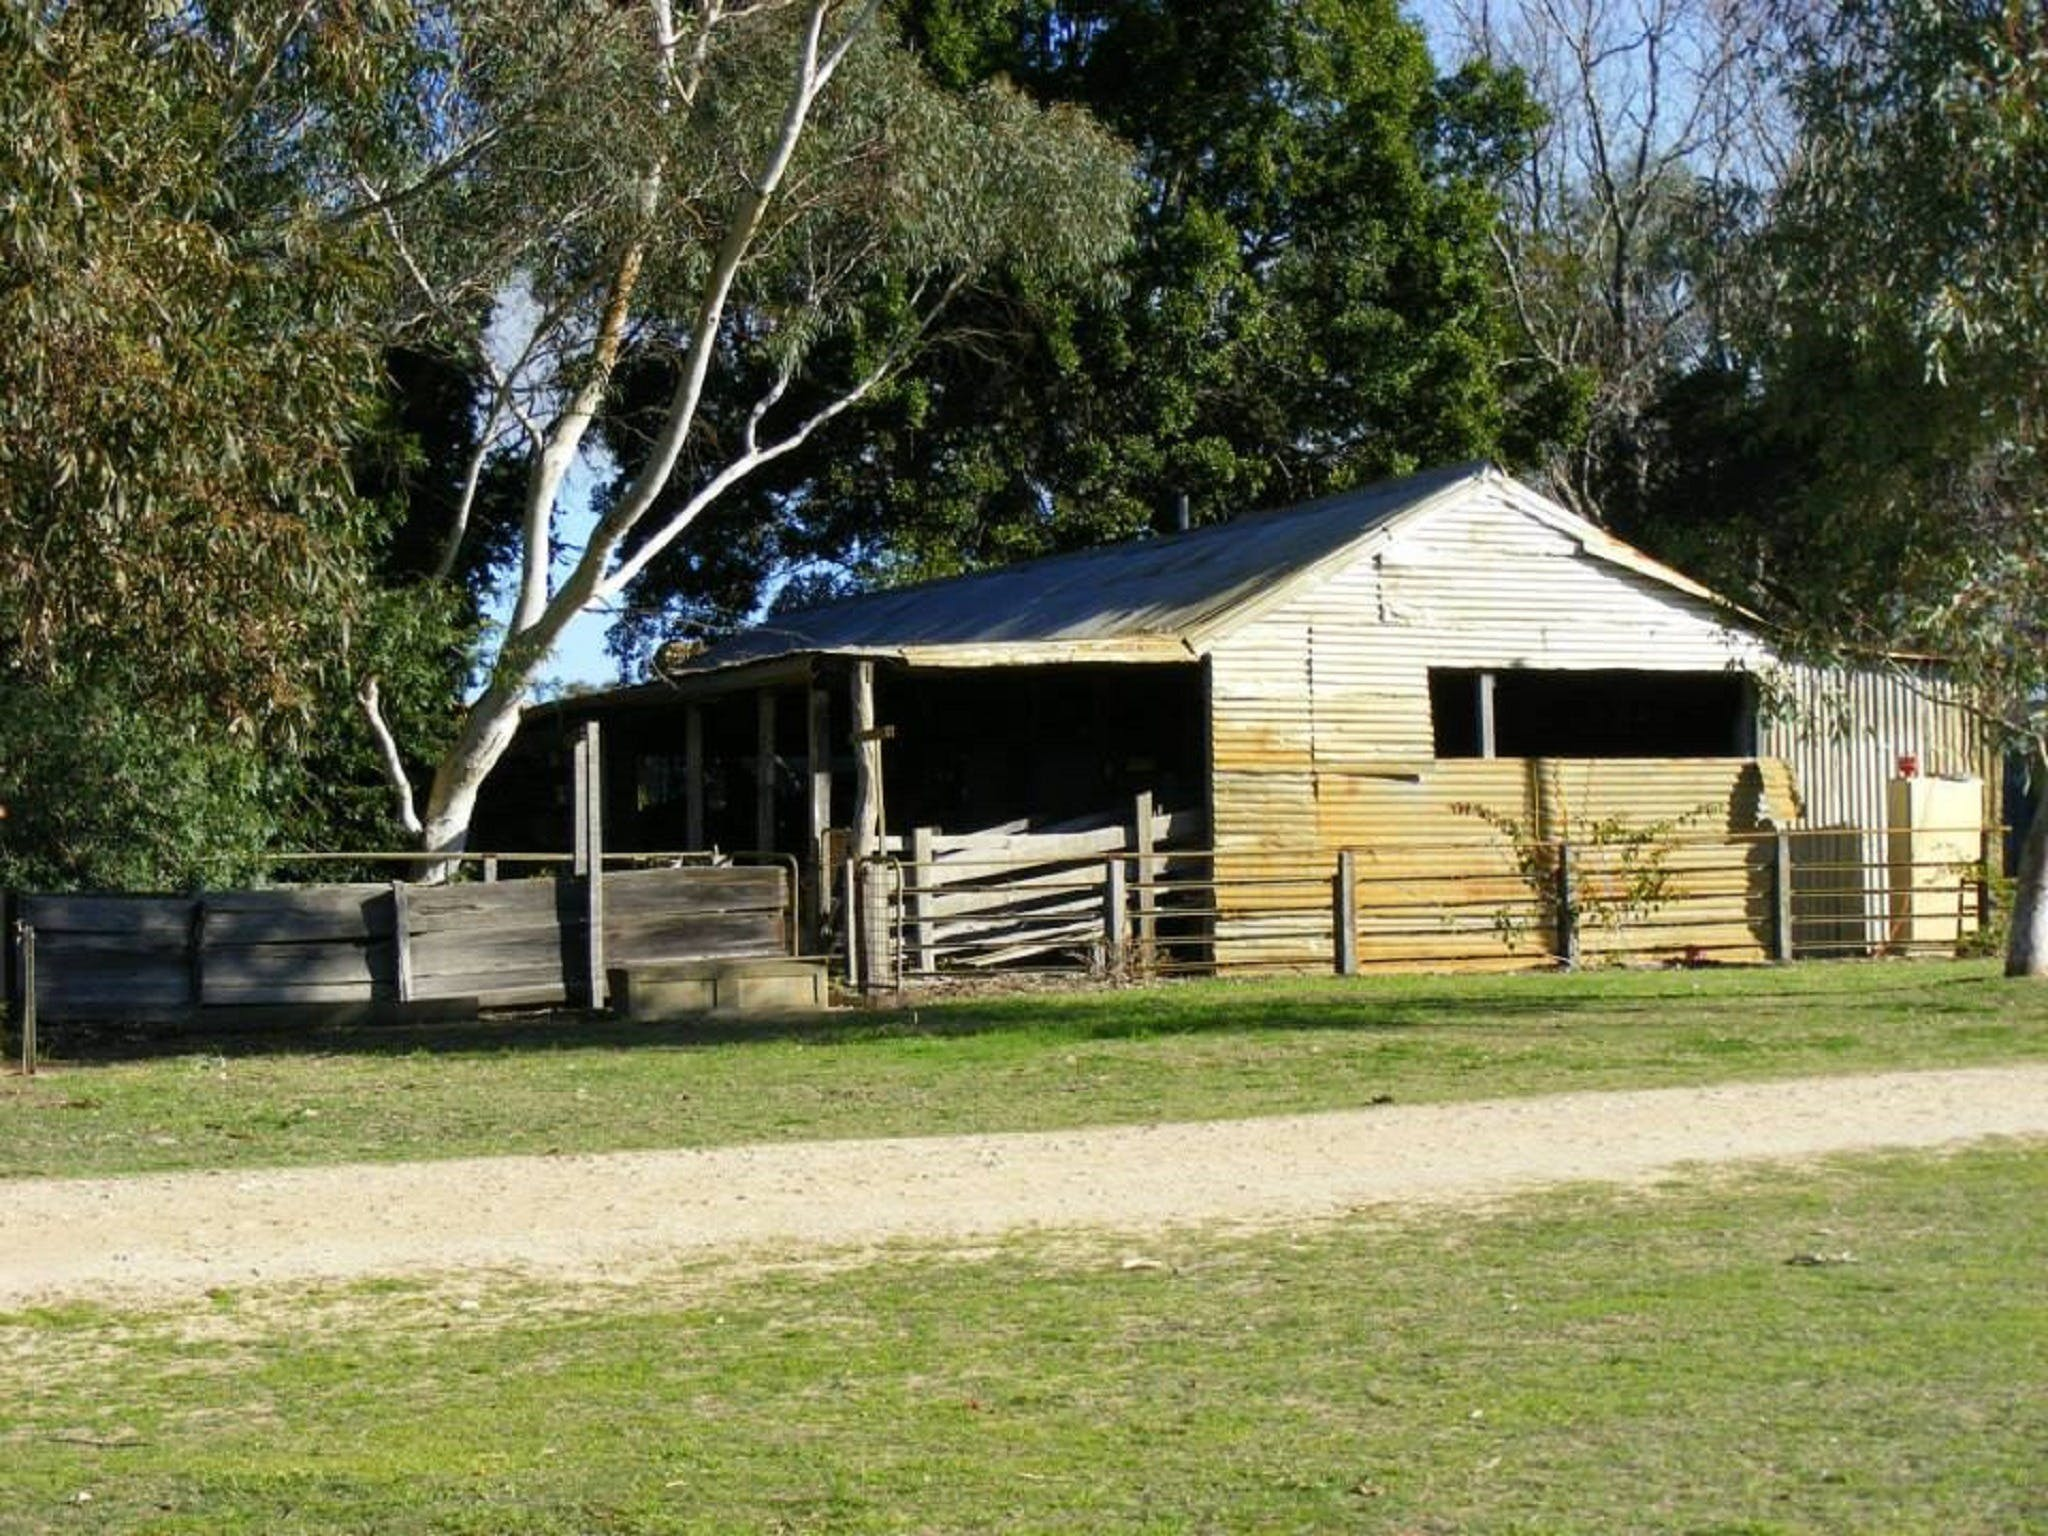 Willowbrook Farm Caravan Park - Accommodation in Bendigo